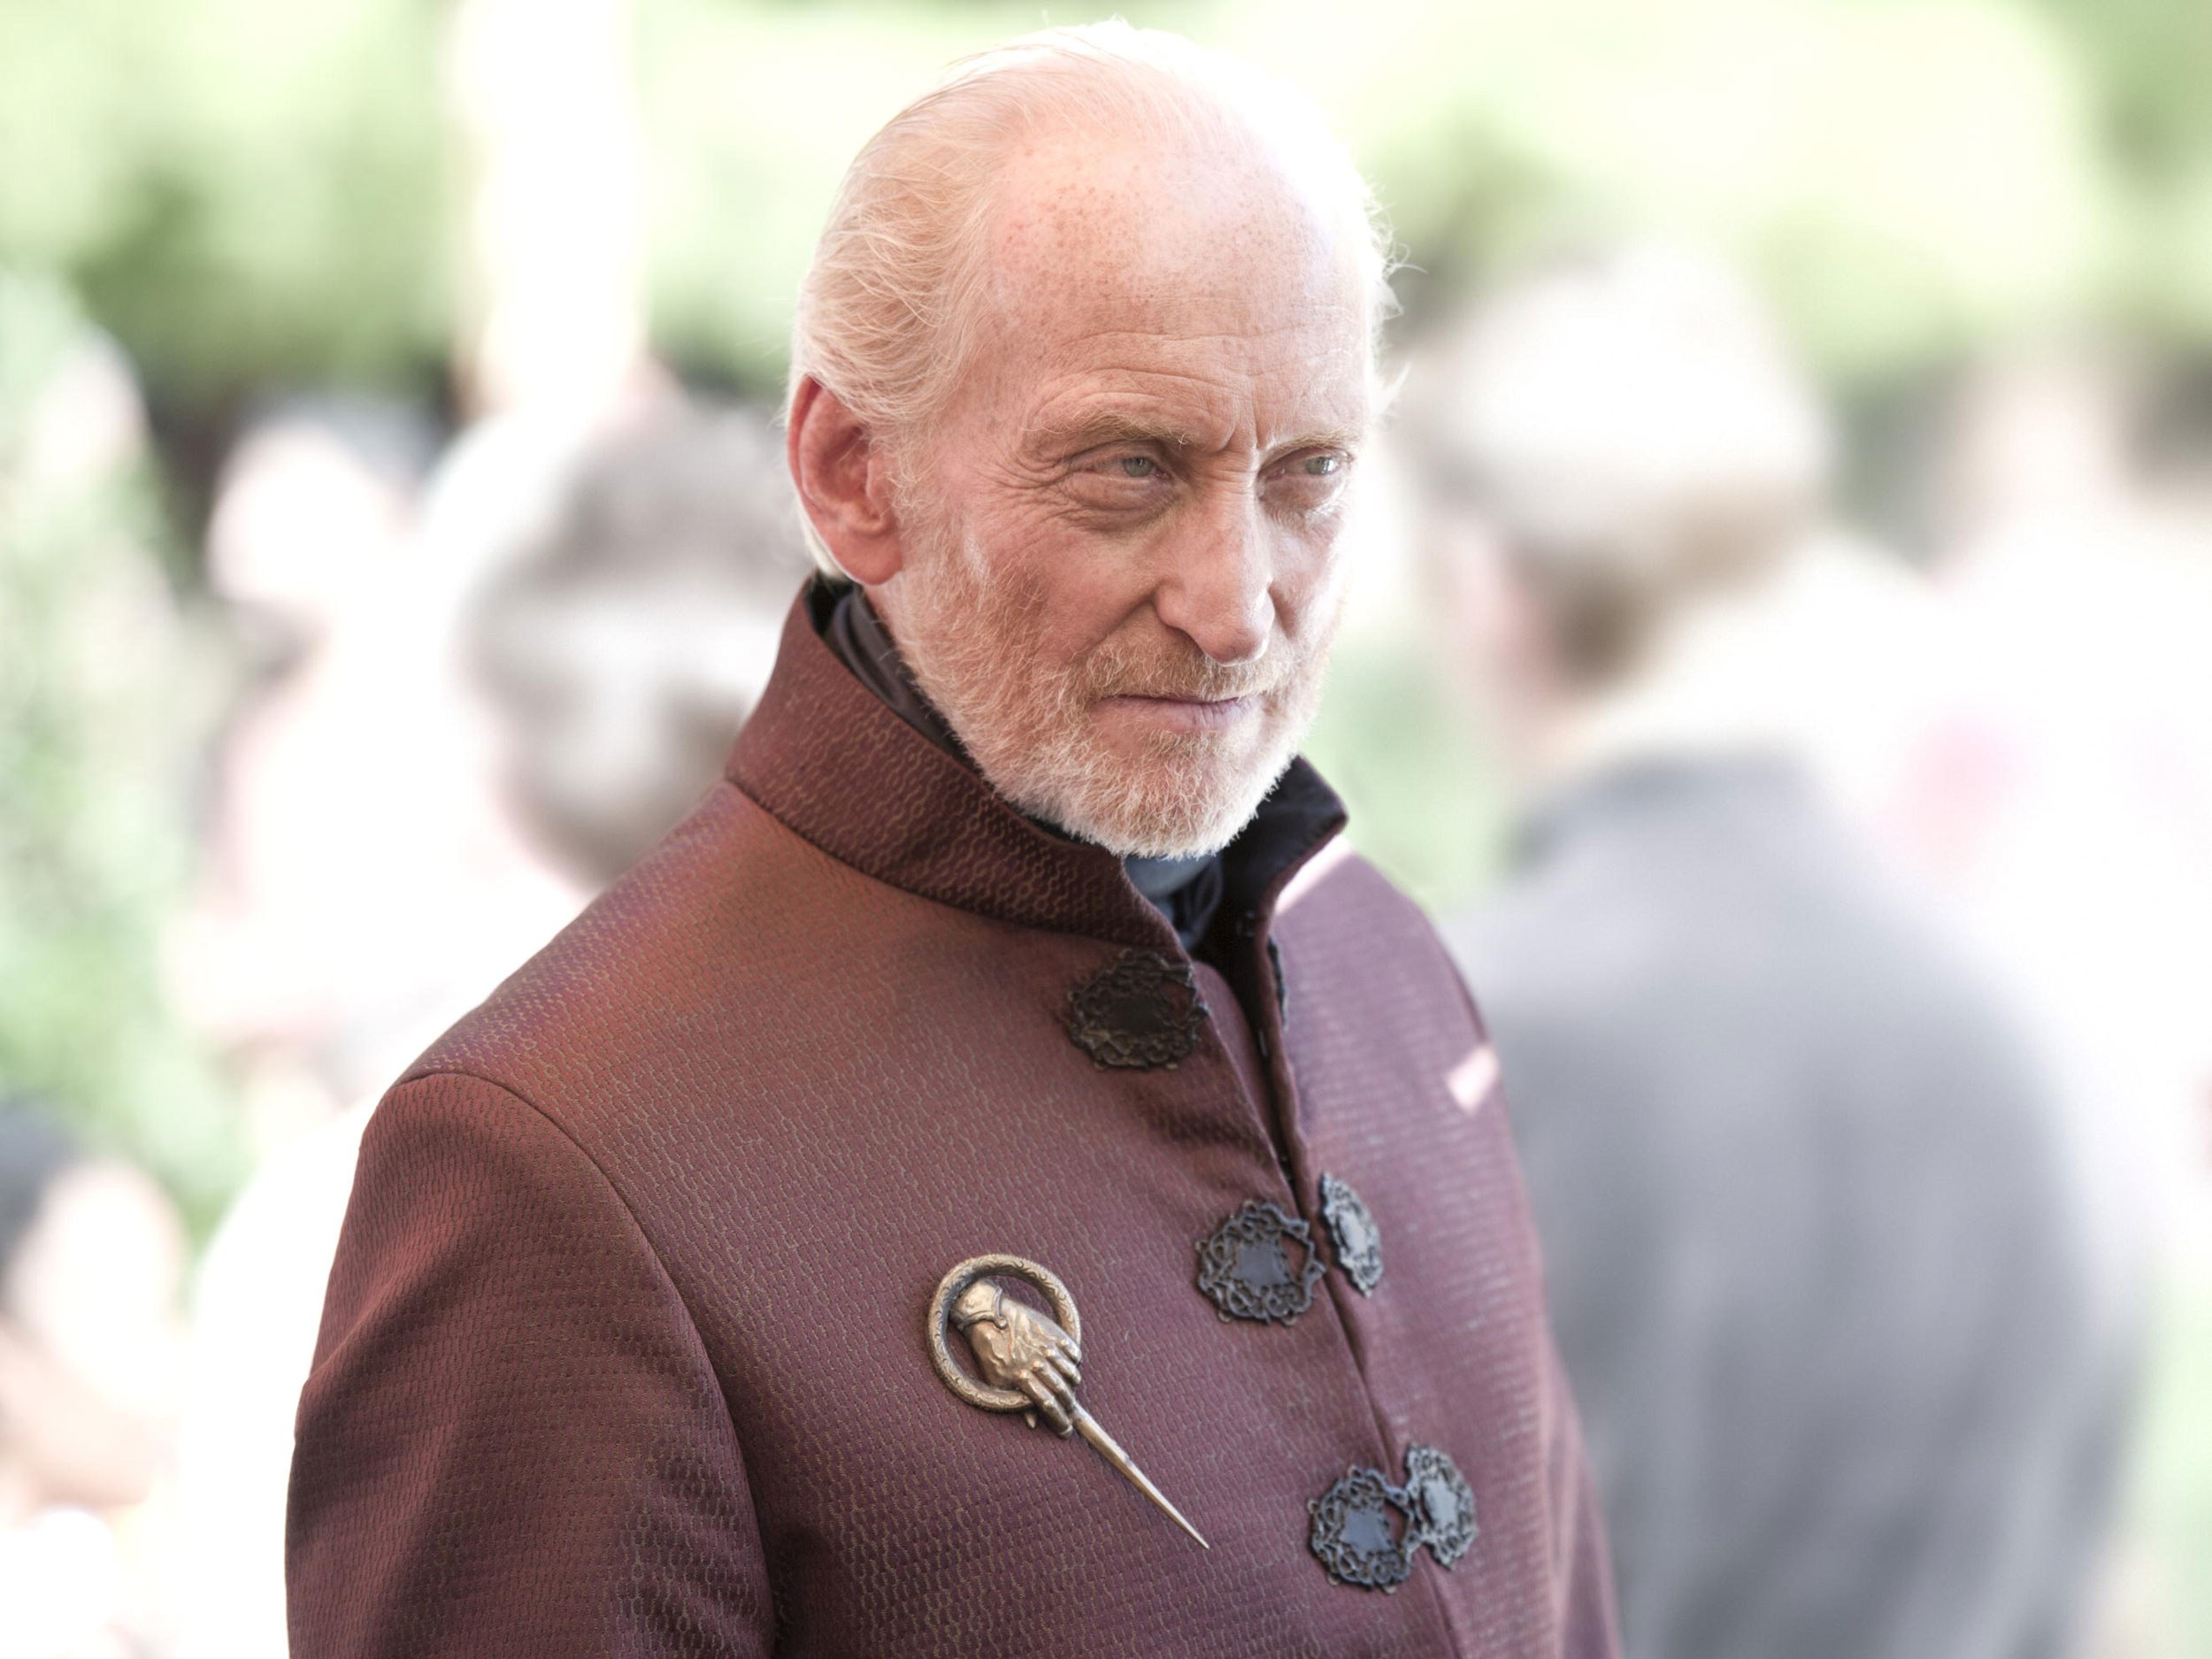 charles dance actor hd wallpaper 61594